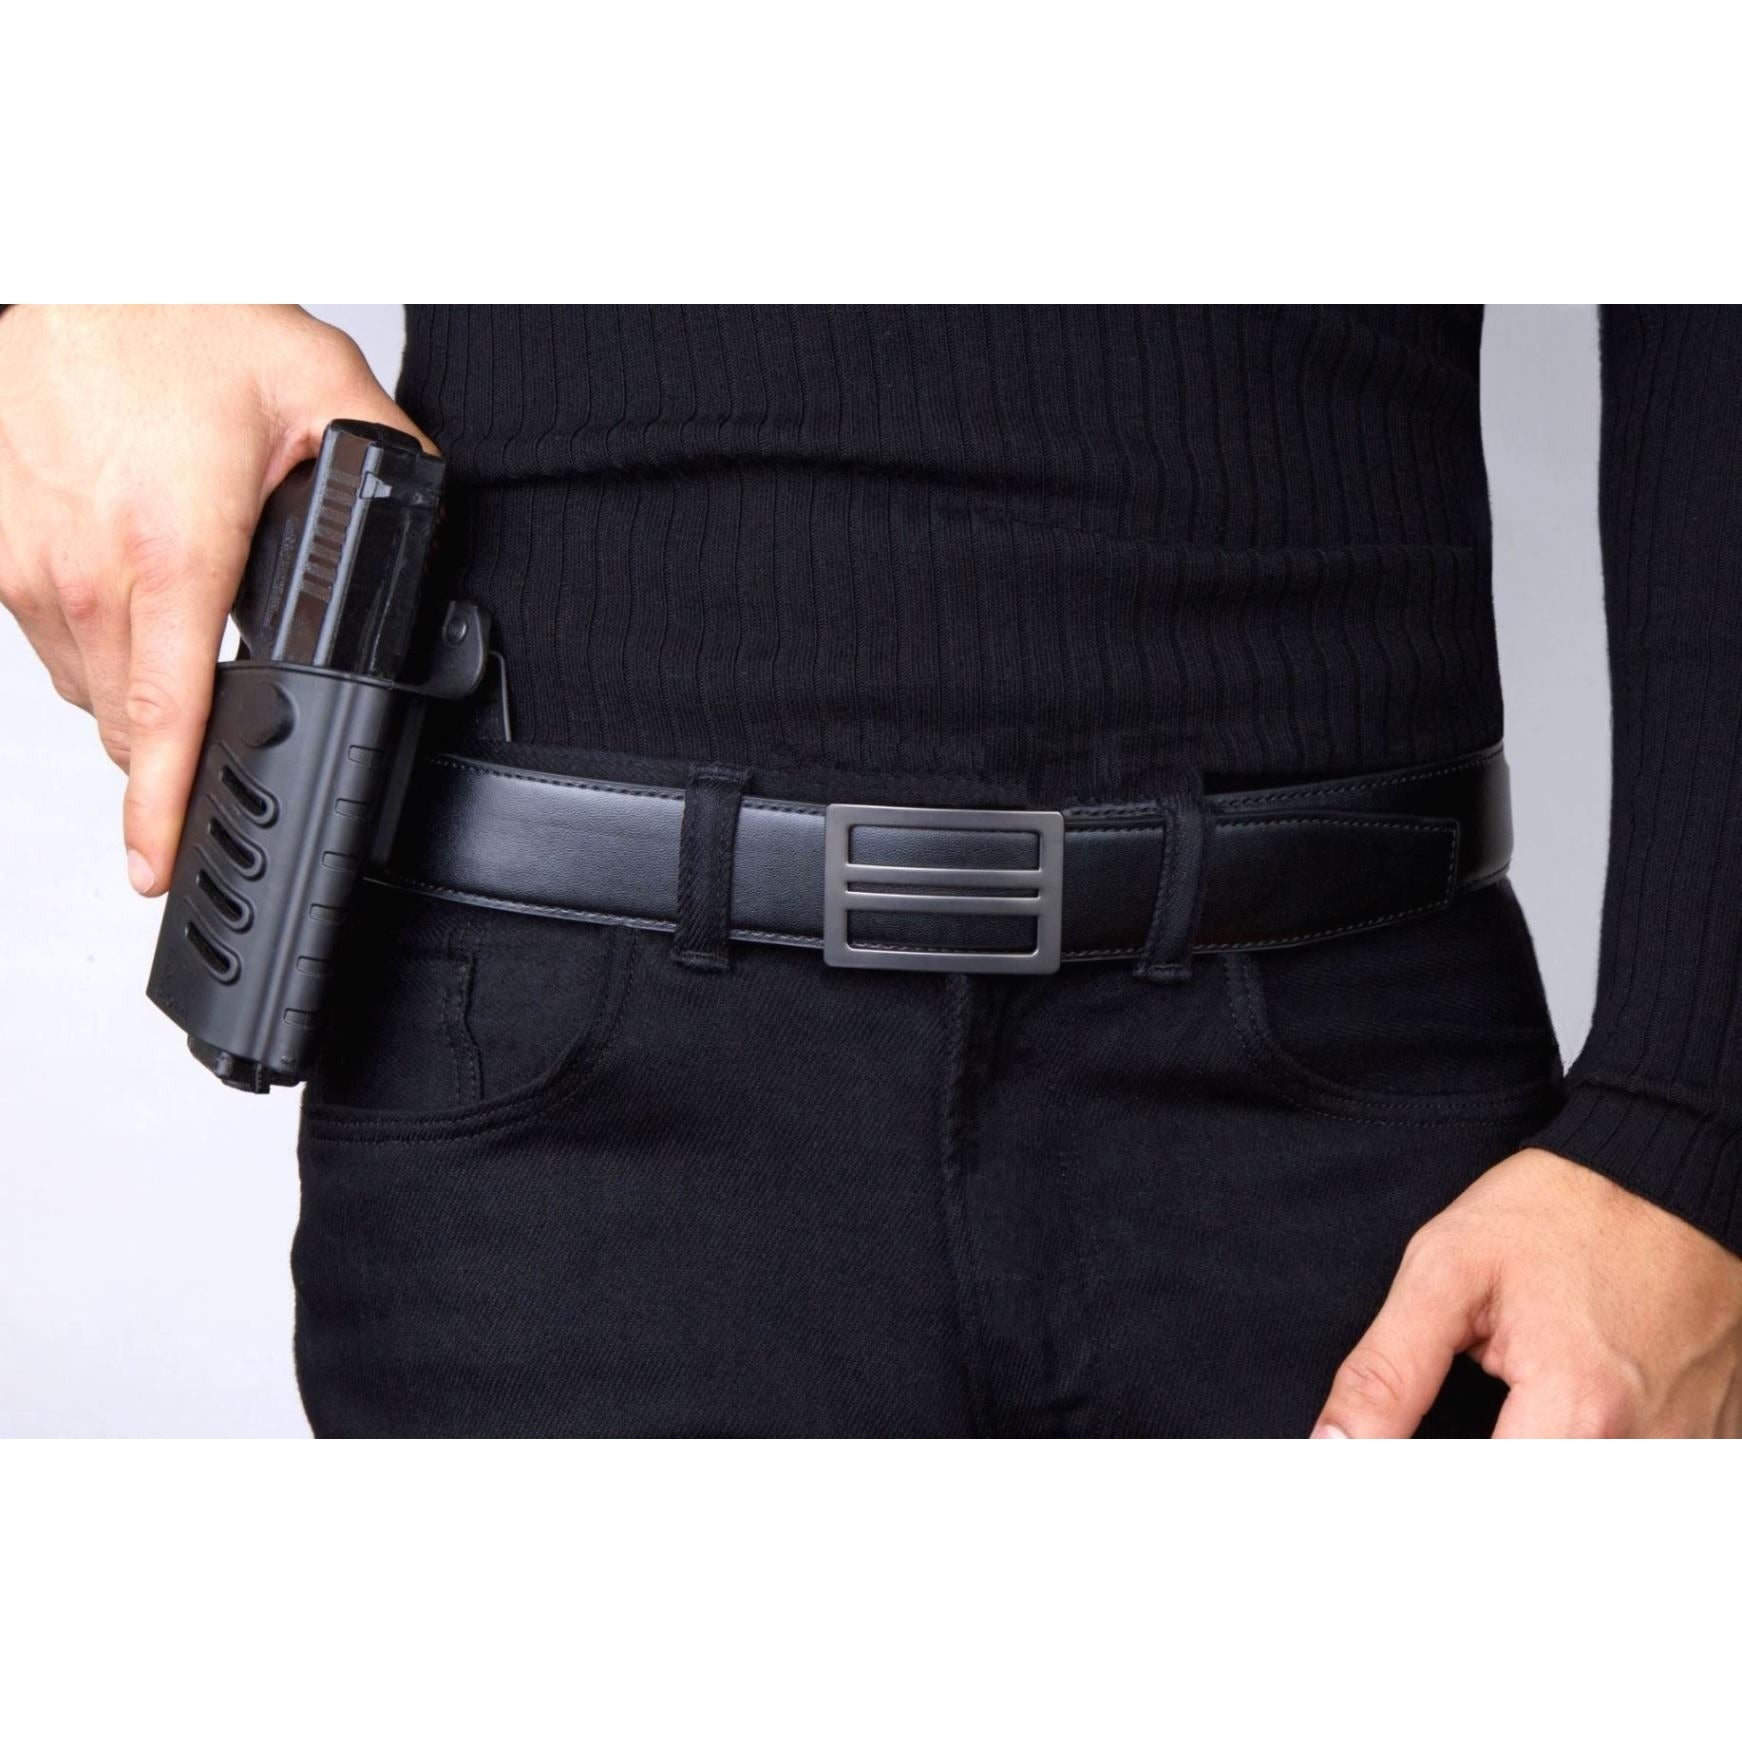 Kore Gun Belts X1 Buckle Black Reinforced Top Grain Leather Belt Kore Essentials It is made of leather or tactical nylon and stiffened with a polymer insert to help. x1 buckle black leather gun belt